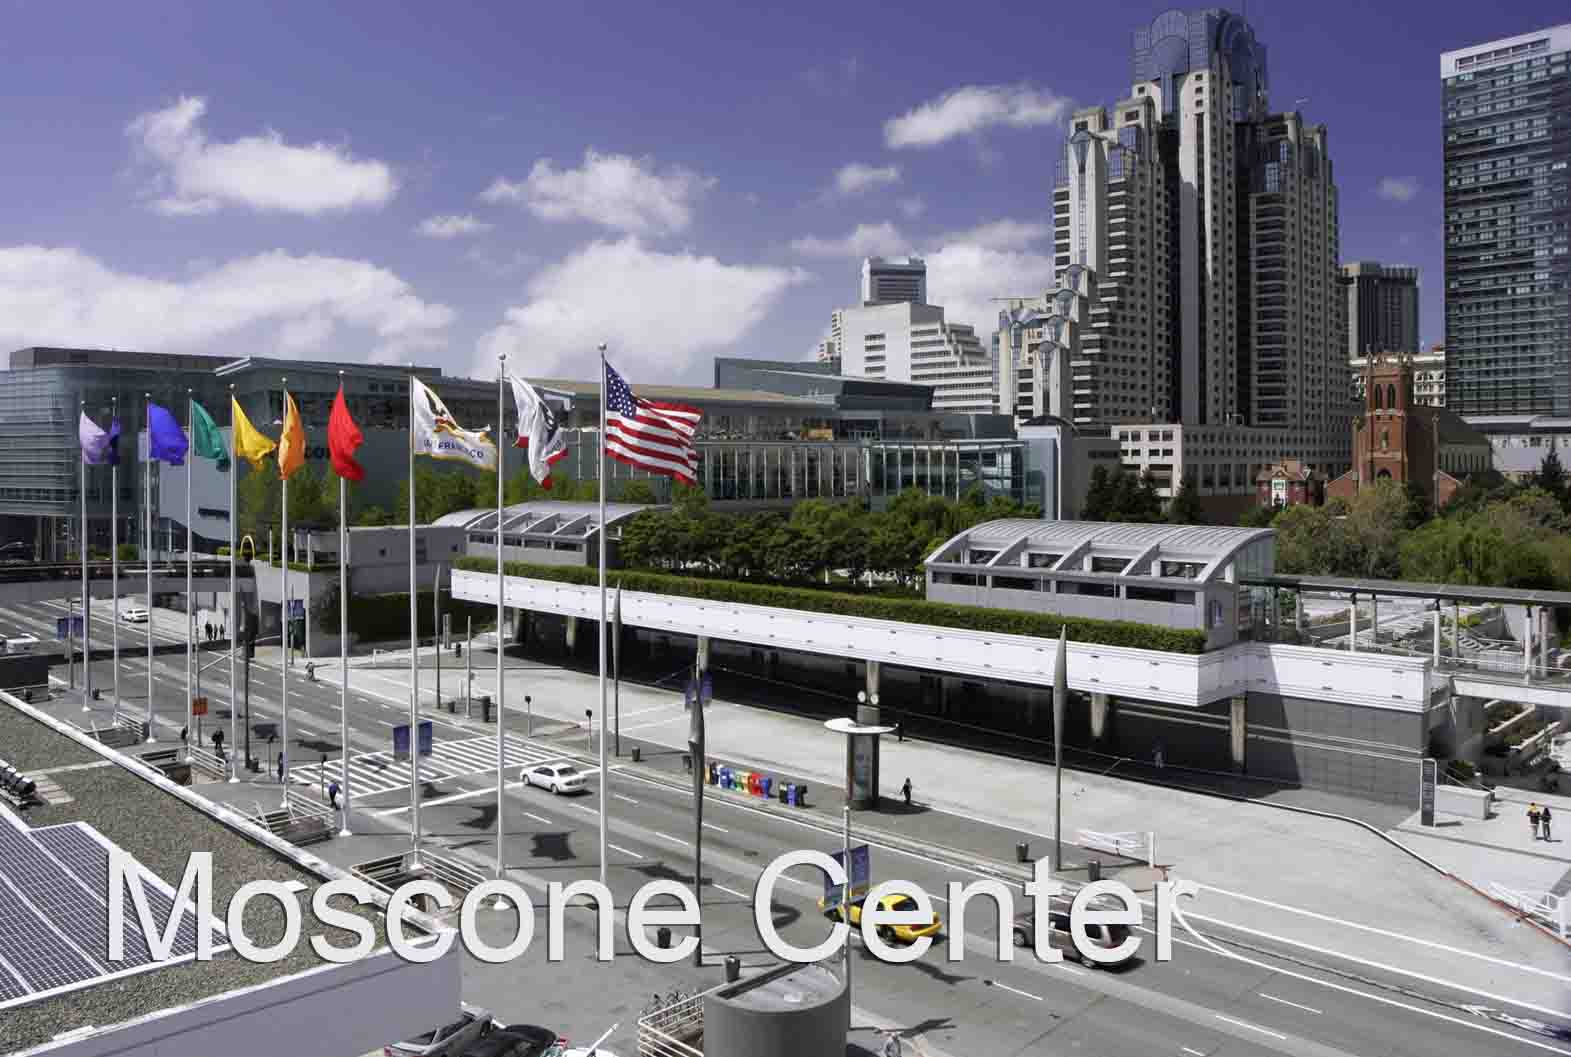 Moscone Center - several buildings and flags in background